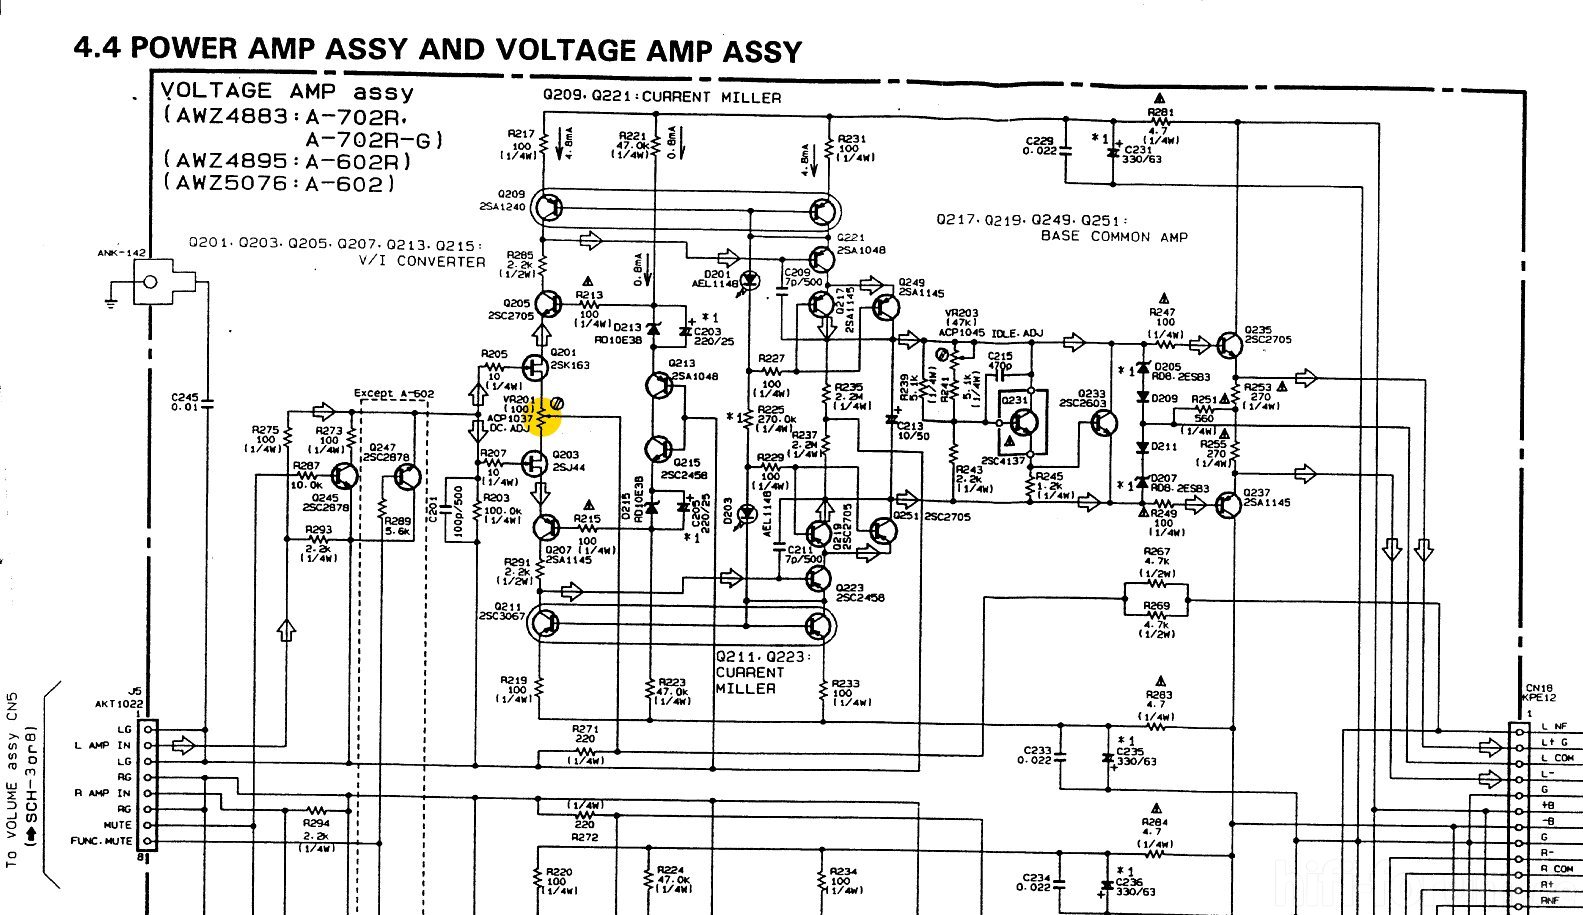 Pioneer A 702r Schematic Detail Power Amp Voltage Amplifier Assembly Offset Adjustment Marked